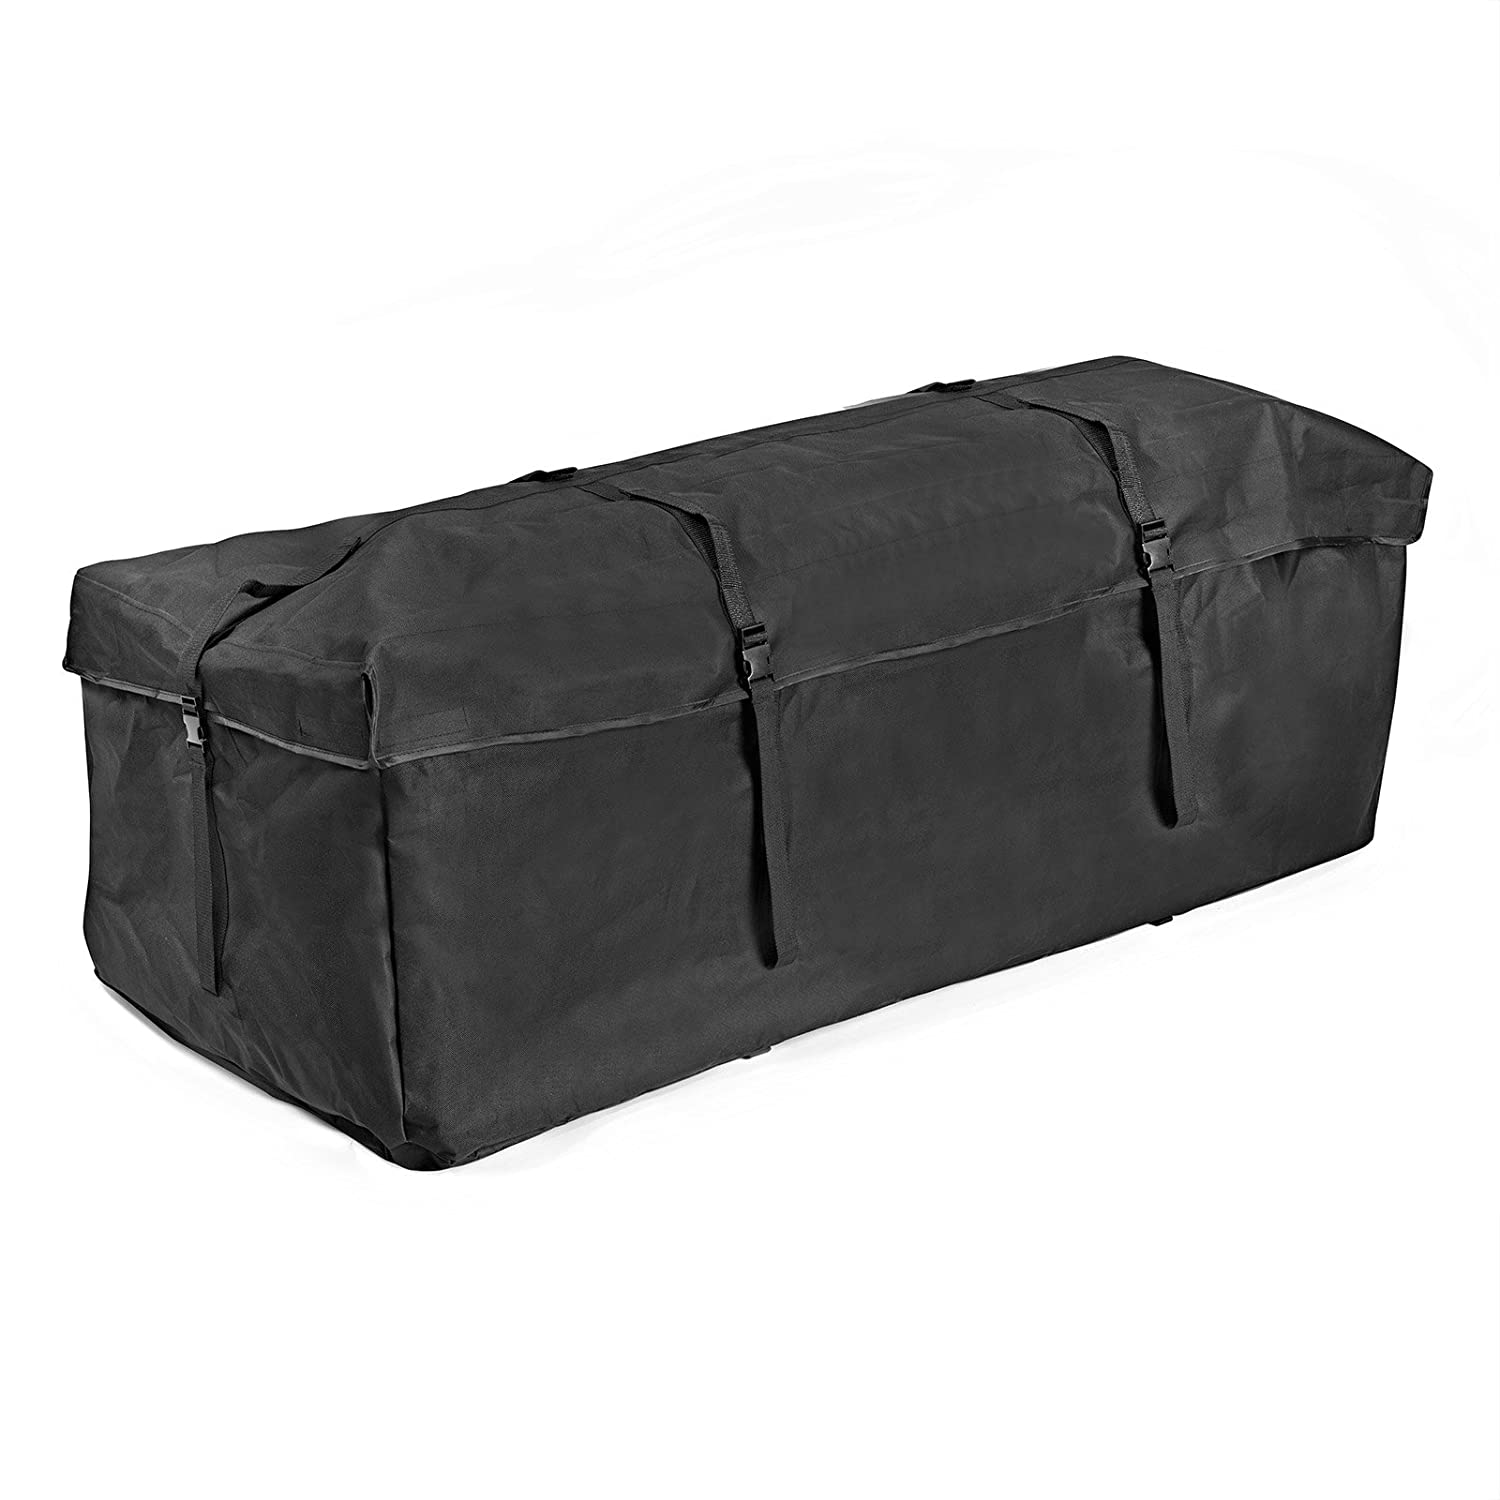 Direct Aftermarket Extra Large Waterproof Duffel Bag